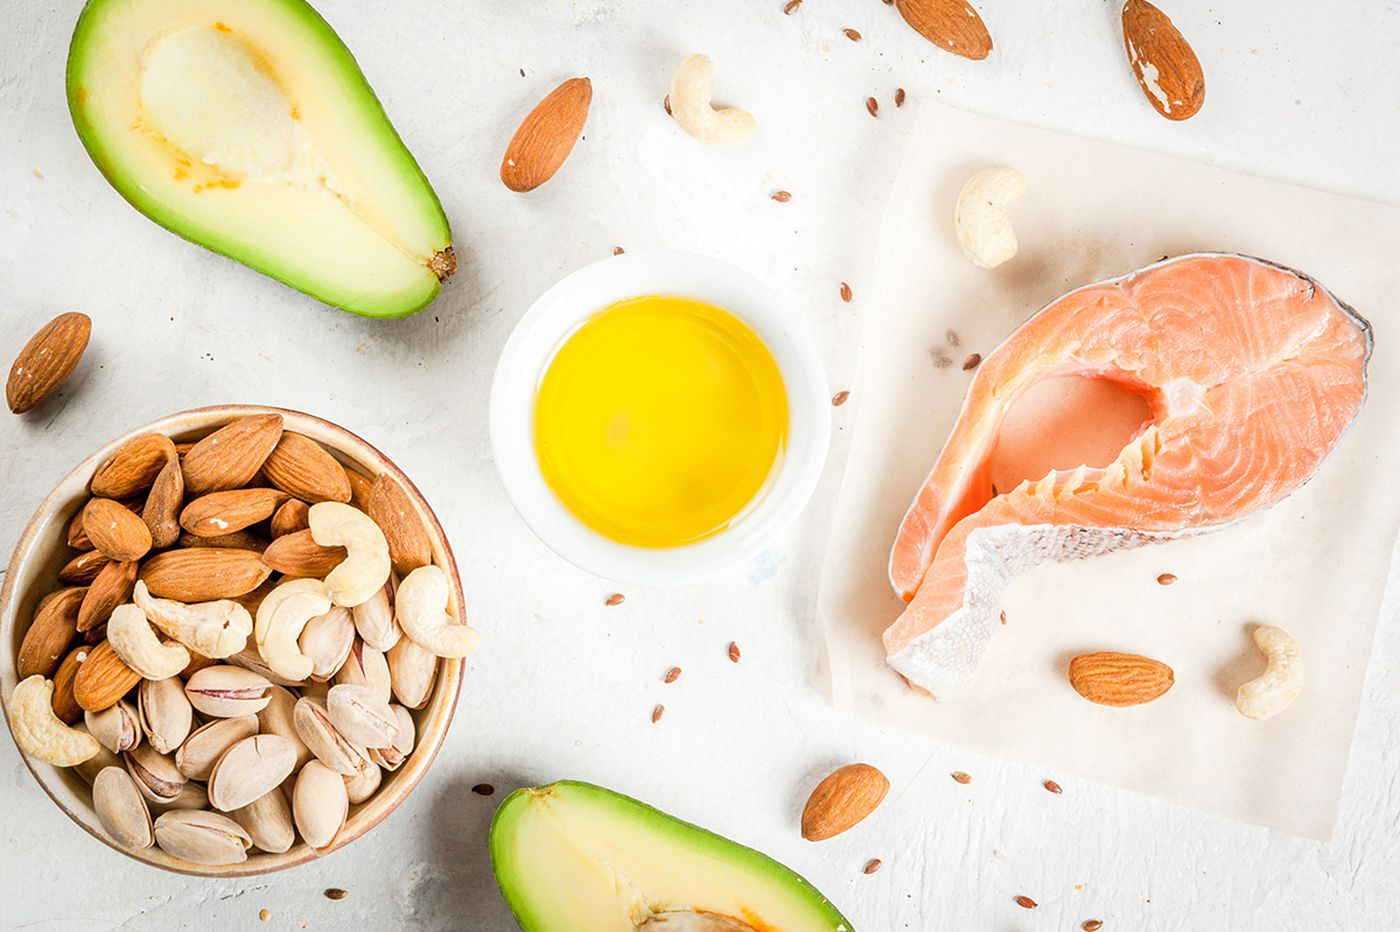 Good fats, bad fats, and why the ketogenic diet matters